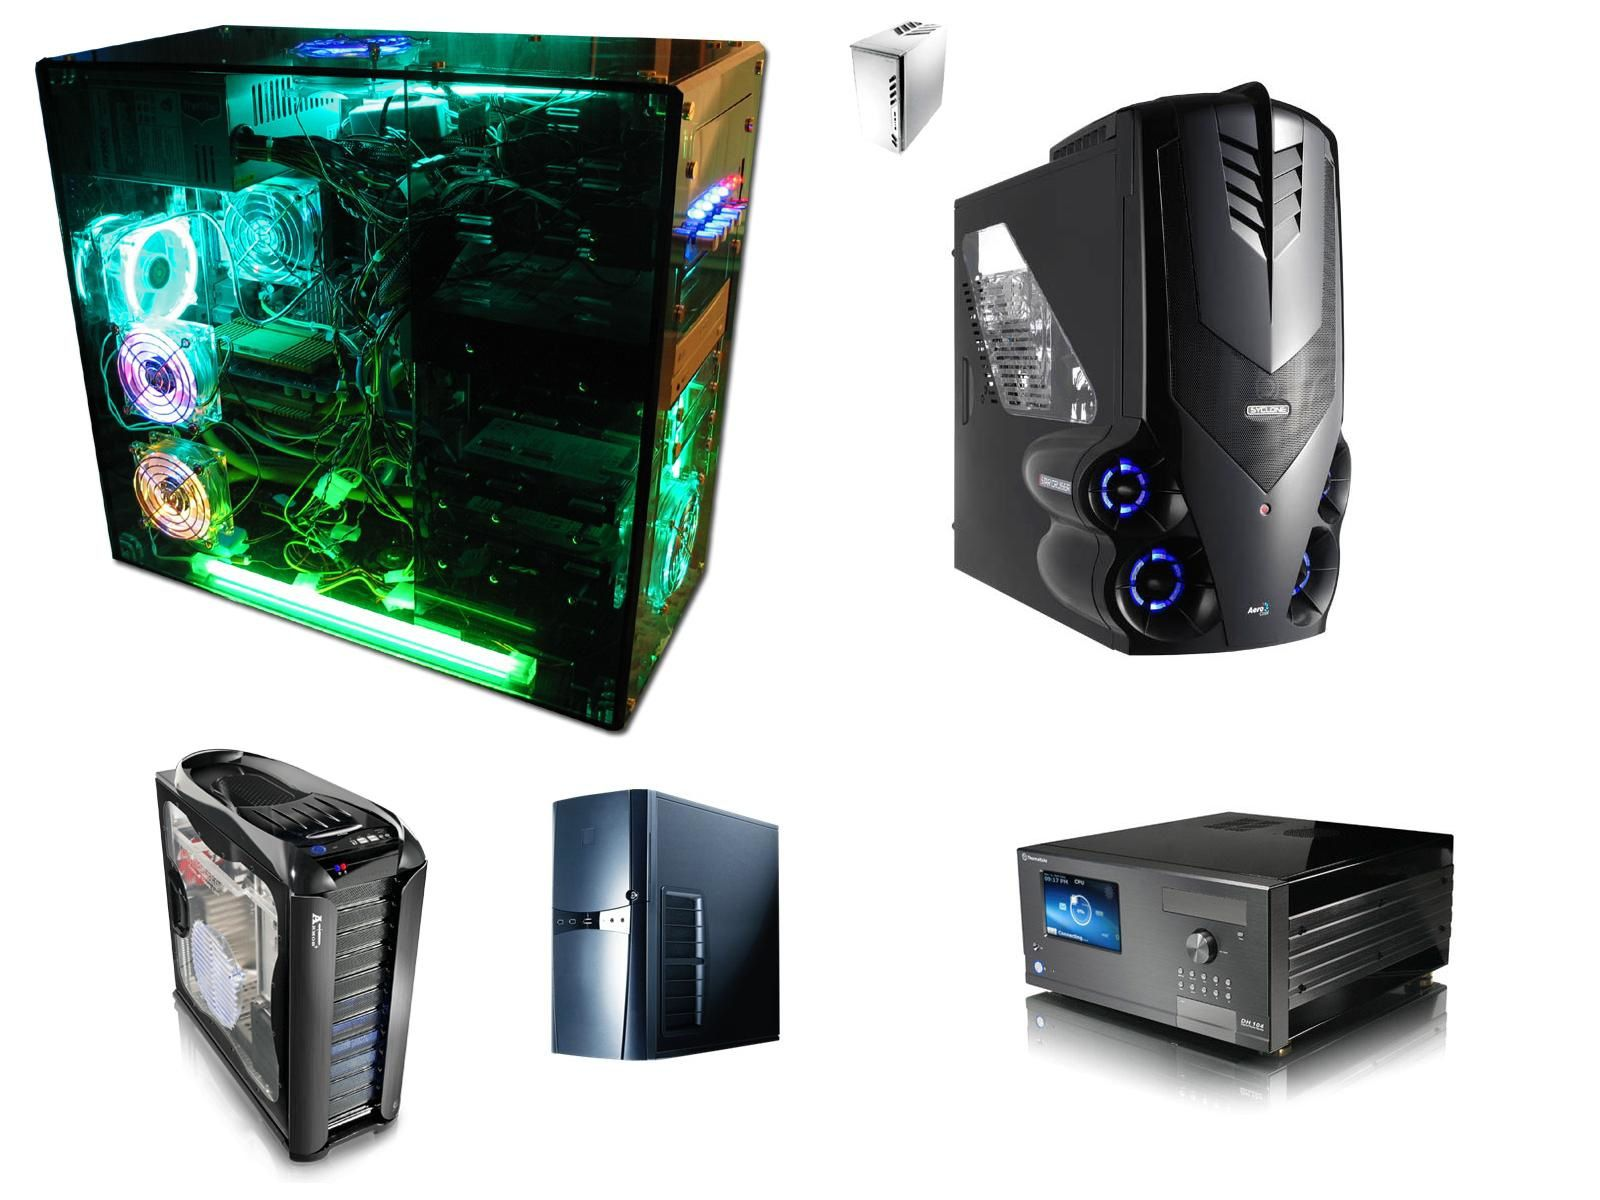 PC Sur Mesure et PC GAMER par Performance PC